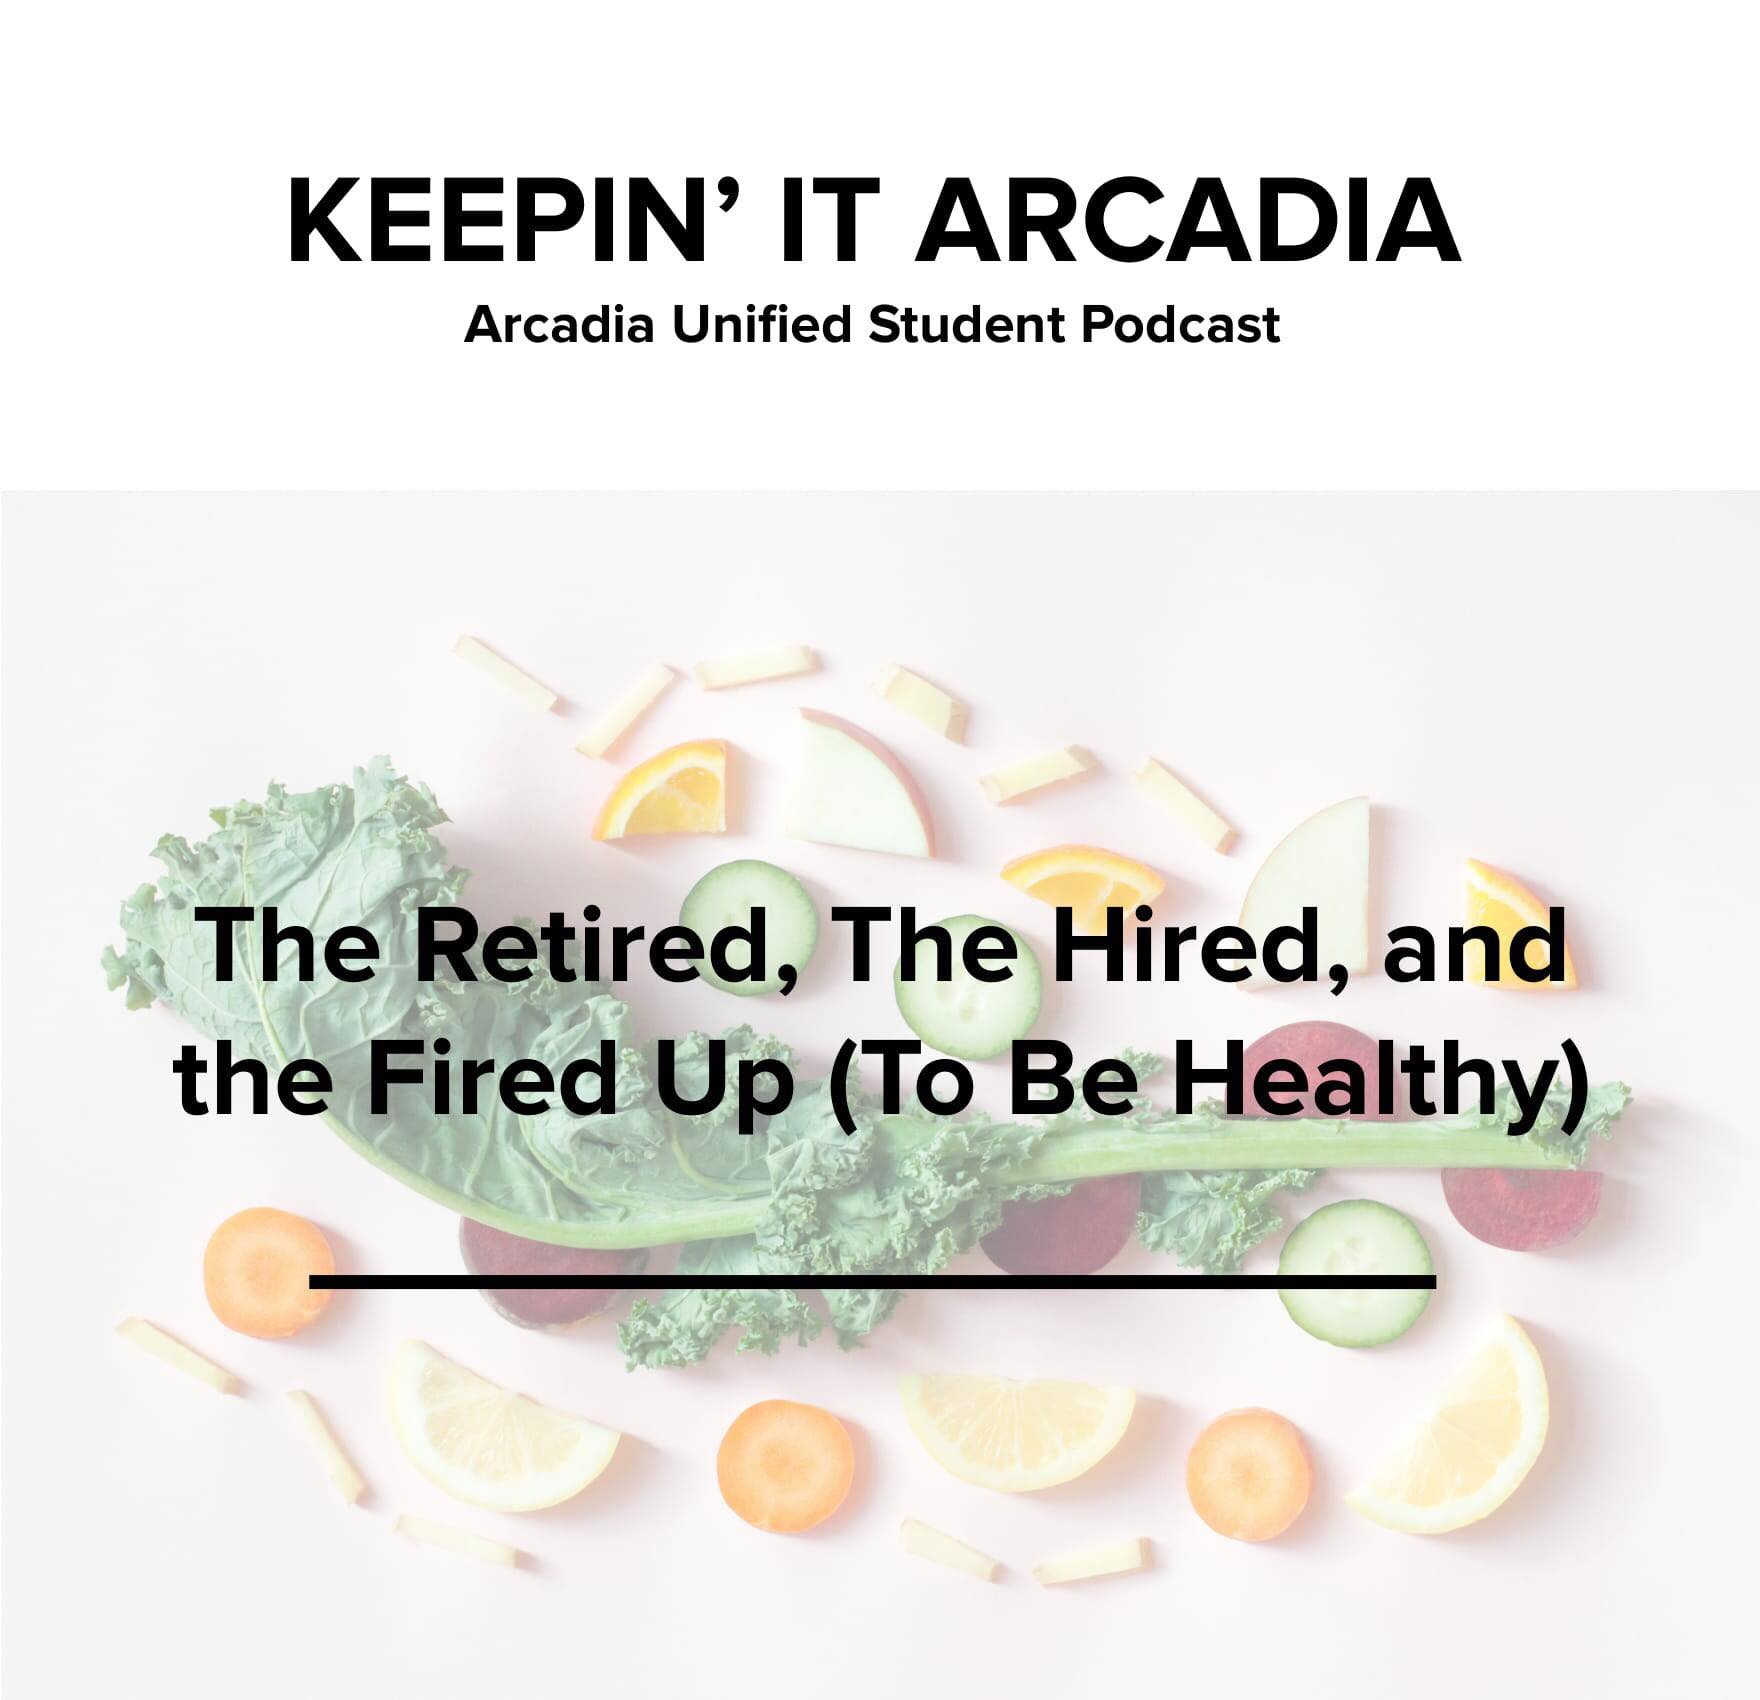 S2 #28 The Retired, The Hired, and The Fired Up (To Be Healthy)